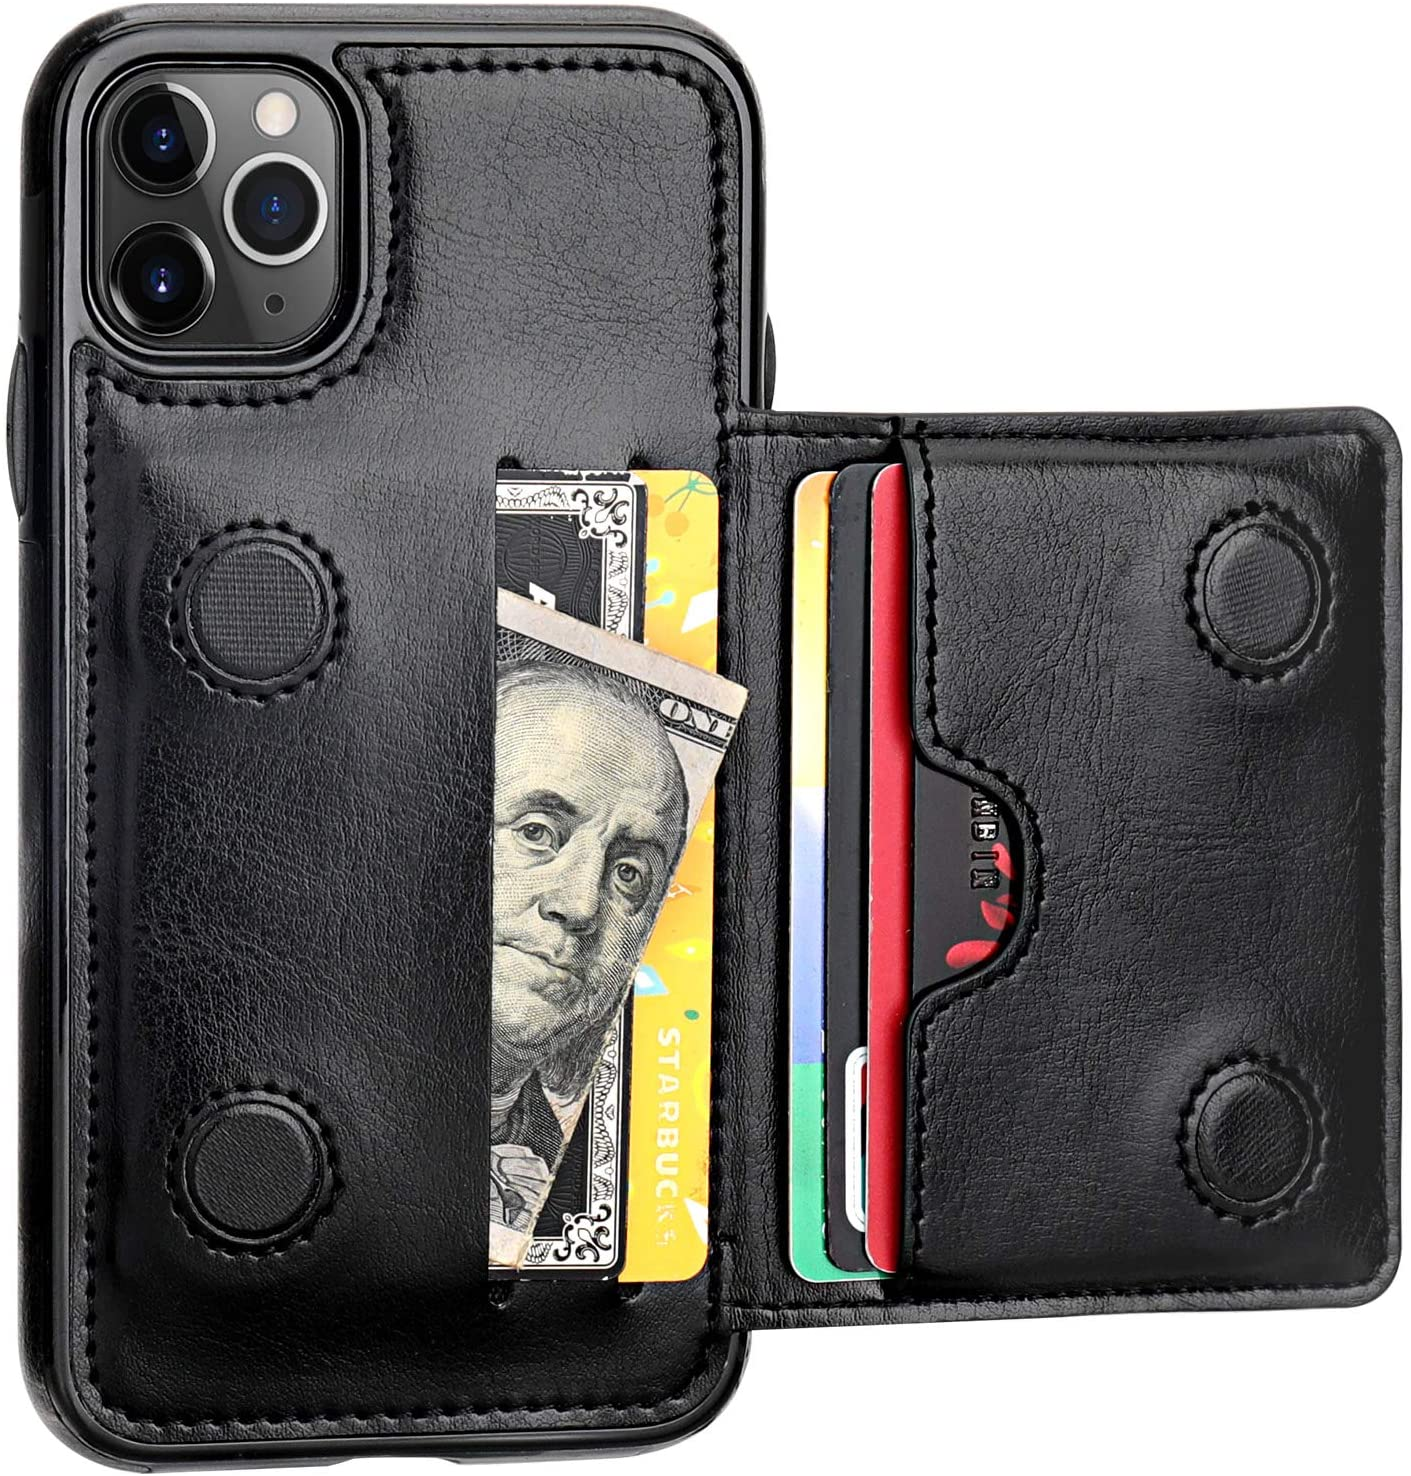 KIHUWEY iPhone 11 Pro Wallet Case Credit Card Holder, Premium Leather Kickstand Durable Shockproof Protective Cover iPhone 11 Pro 5.8 Inch(Black)